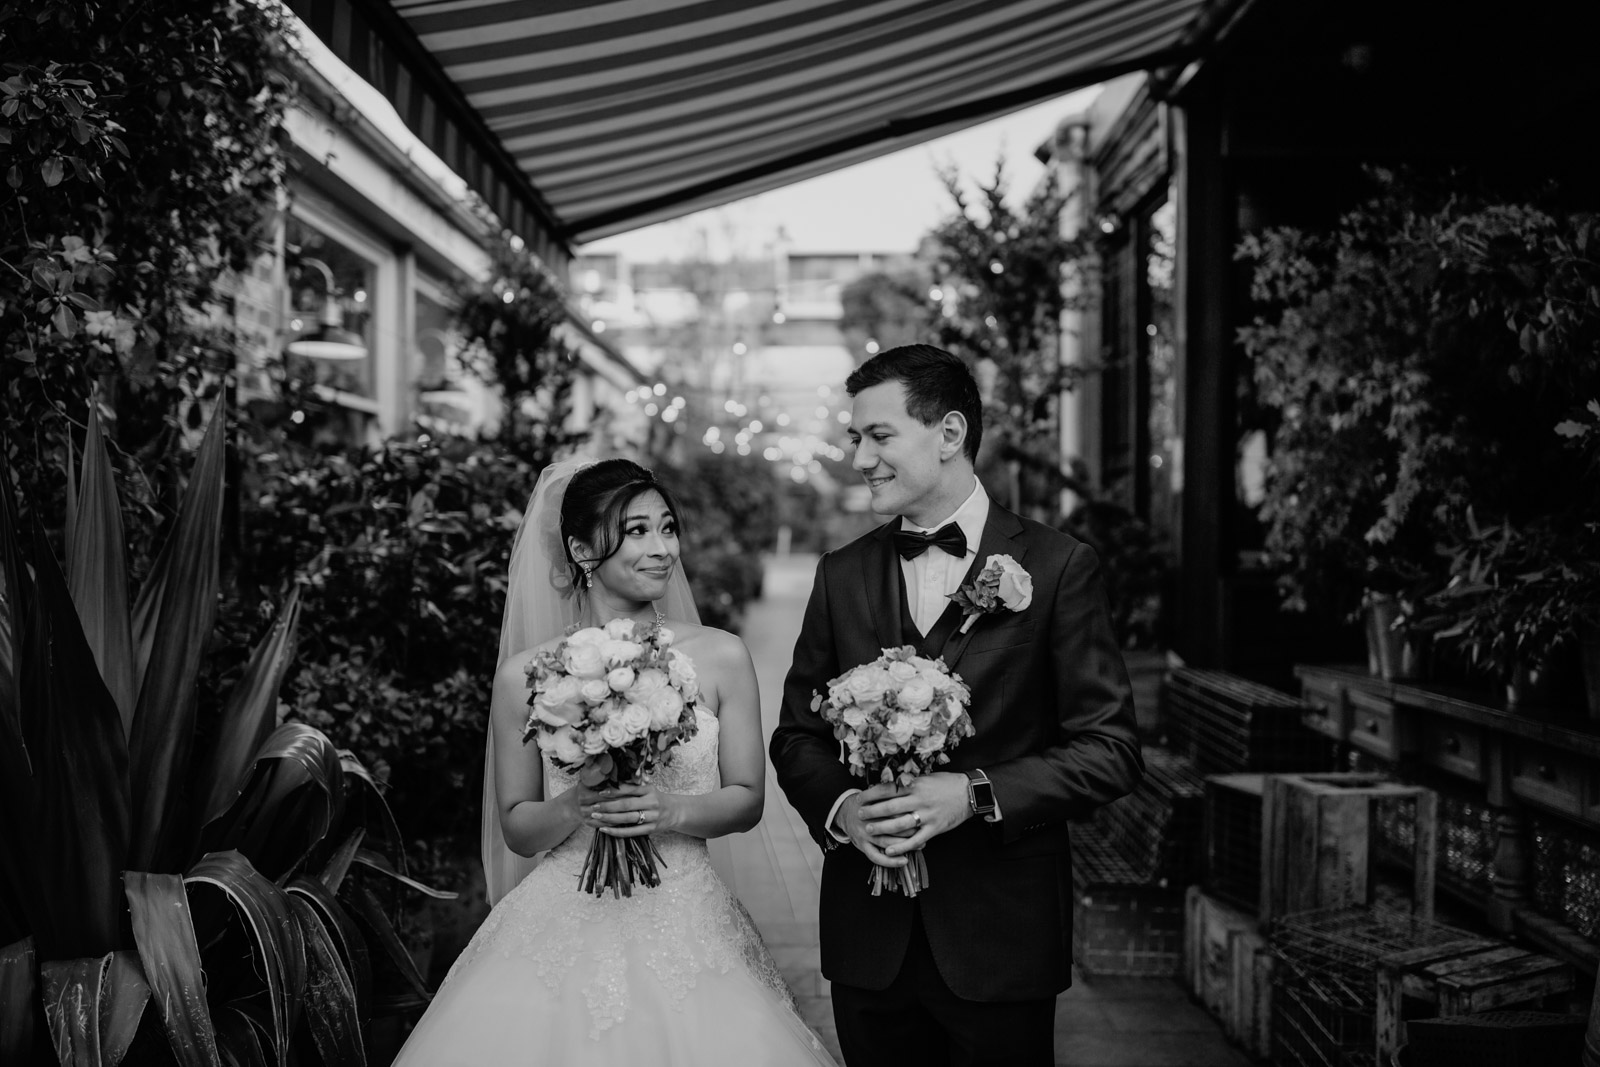 A black and white photo of a man and woman on their wedding day, both holding bouquets of roses. In the background are some plants and wooden crates.